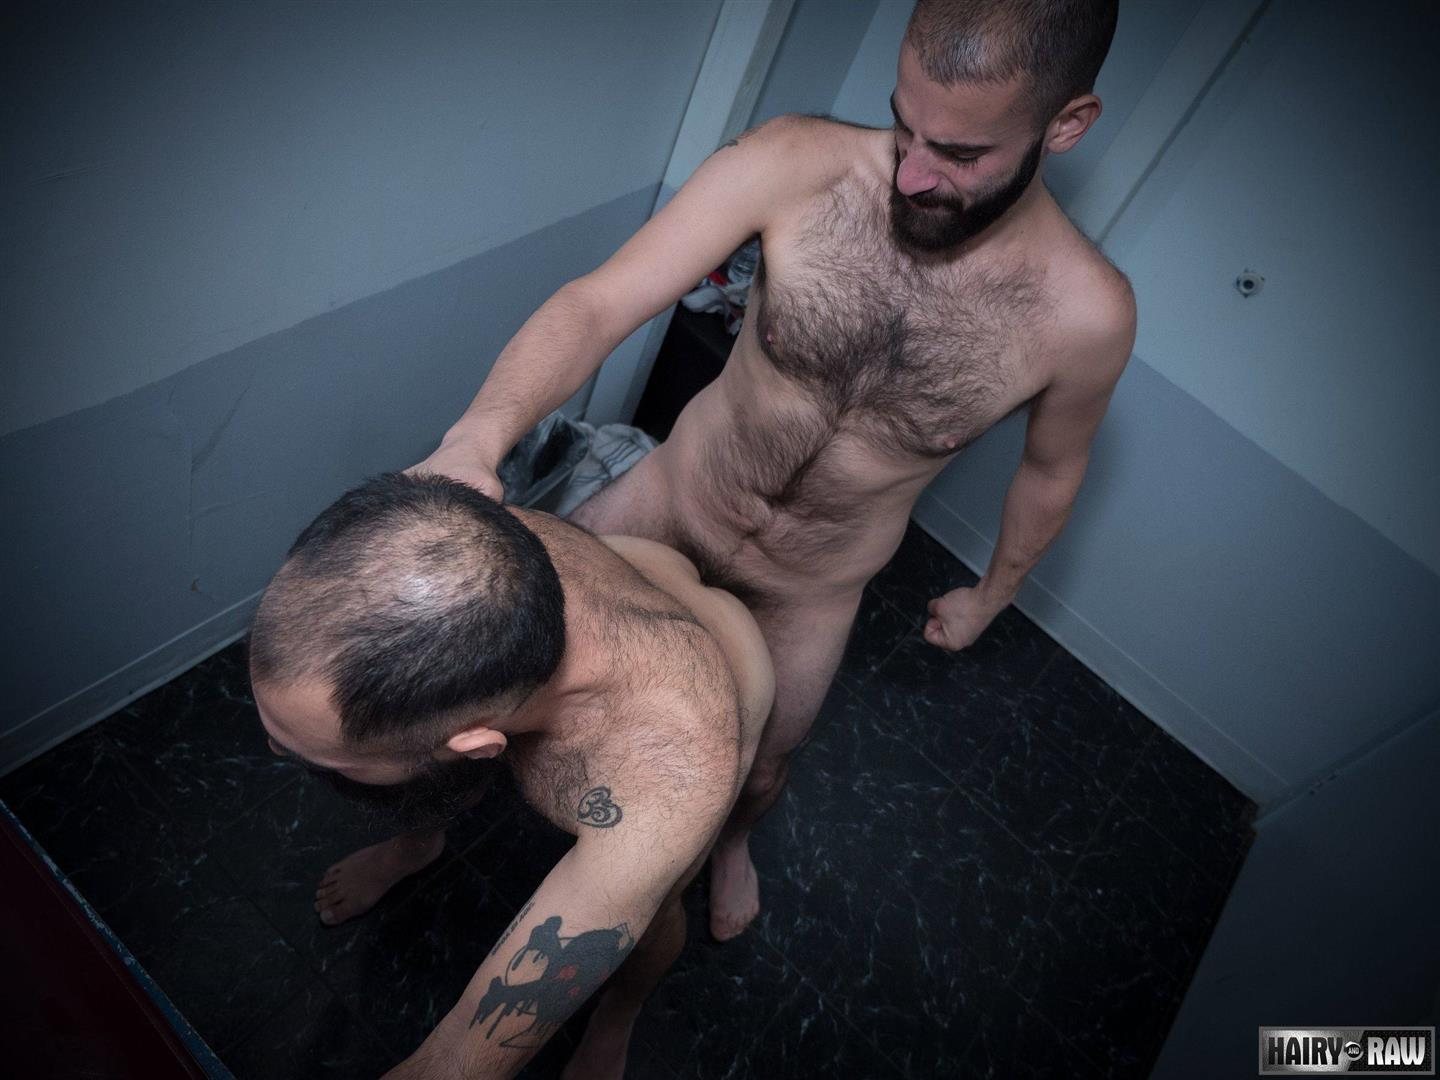 Hairy-and-Raw-Aries-Steele-and-Andrex-Xandrex-Bareback-Fucking-at-Adult-Bookstore-26 Hairy Otters Fucking Bareback In A Booth At An Adult Bookstore